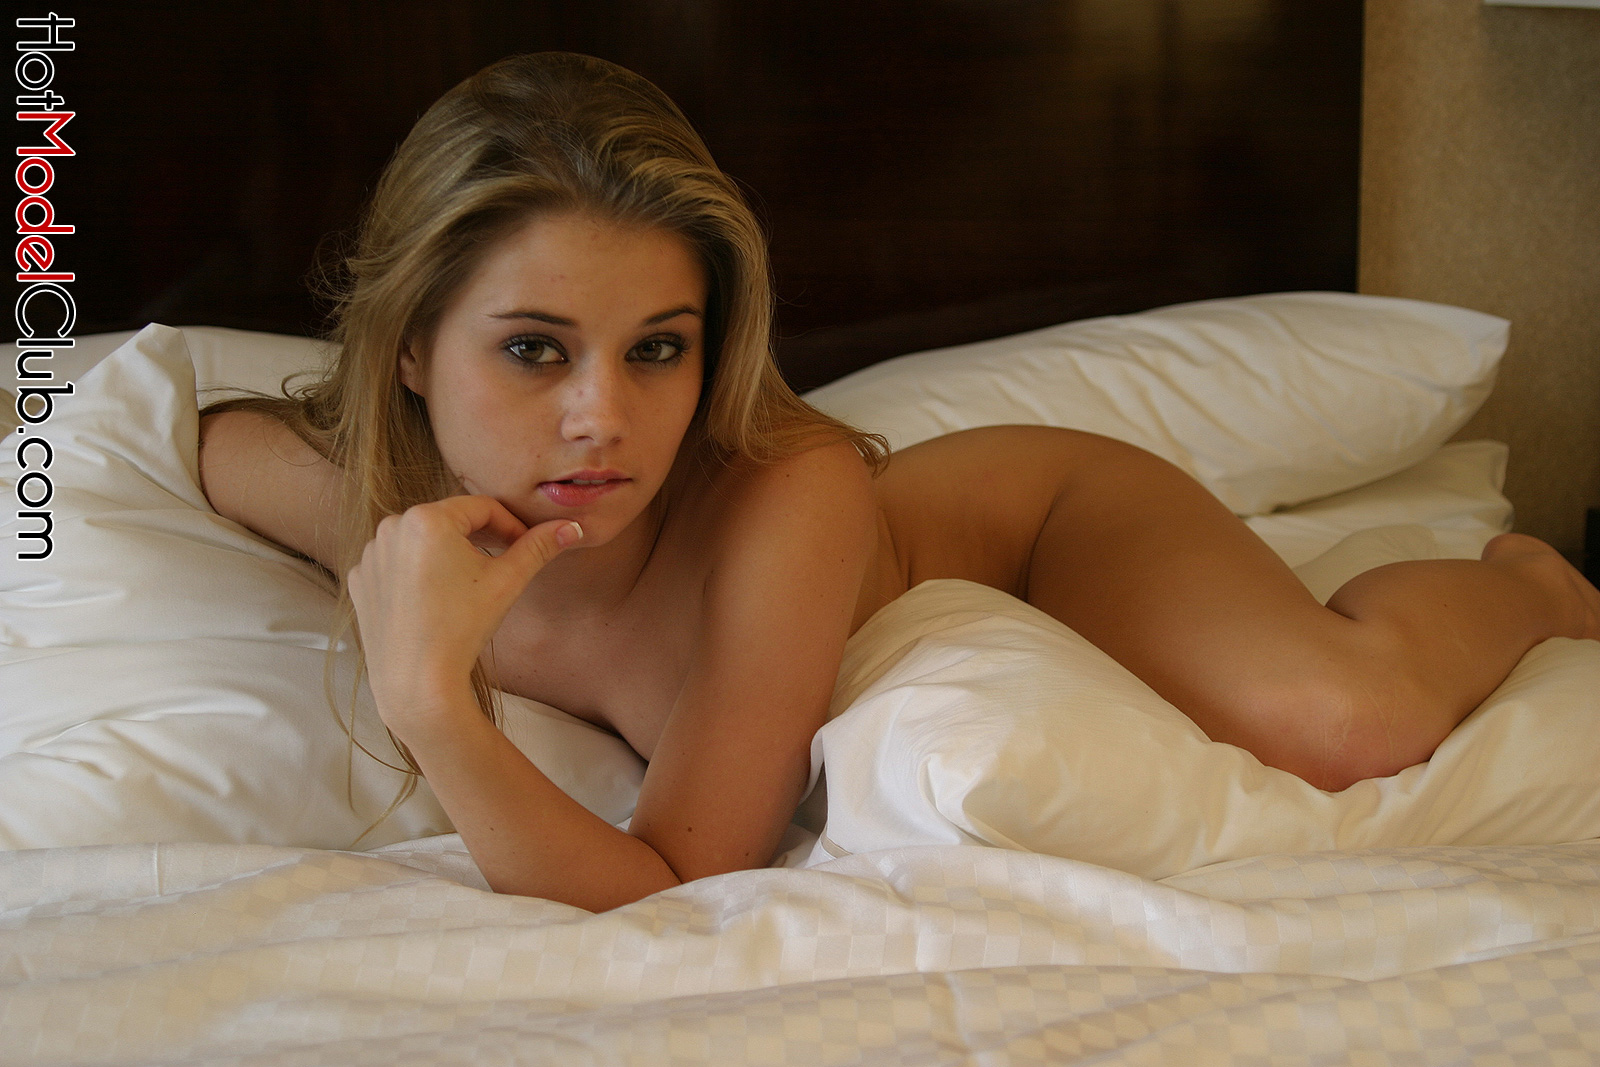 Stacy Starlet In Bed - Hot Girls Wallpaper